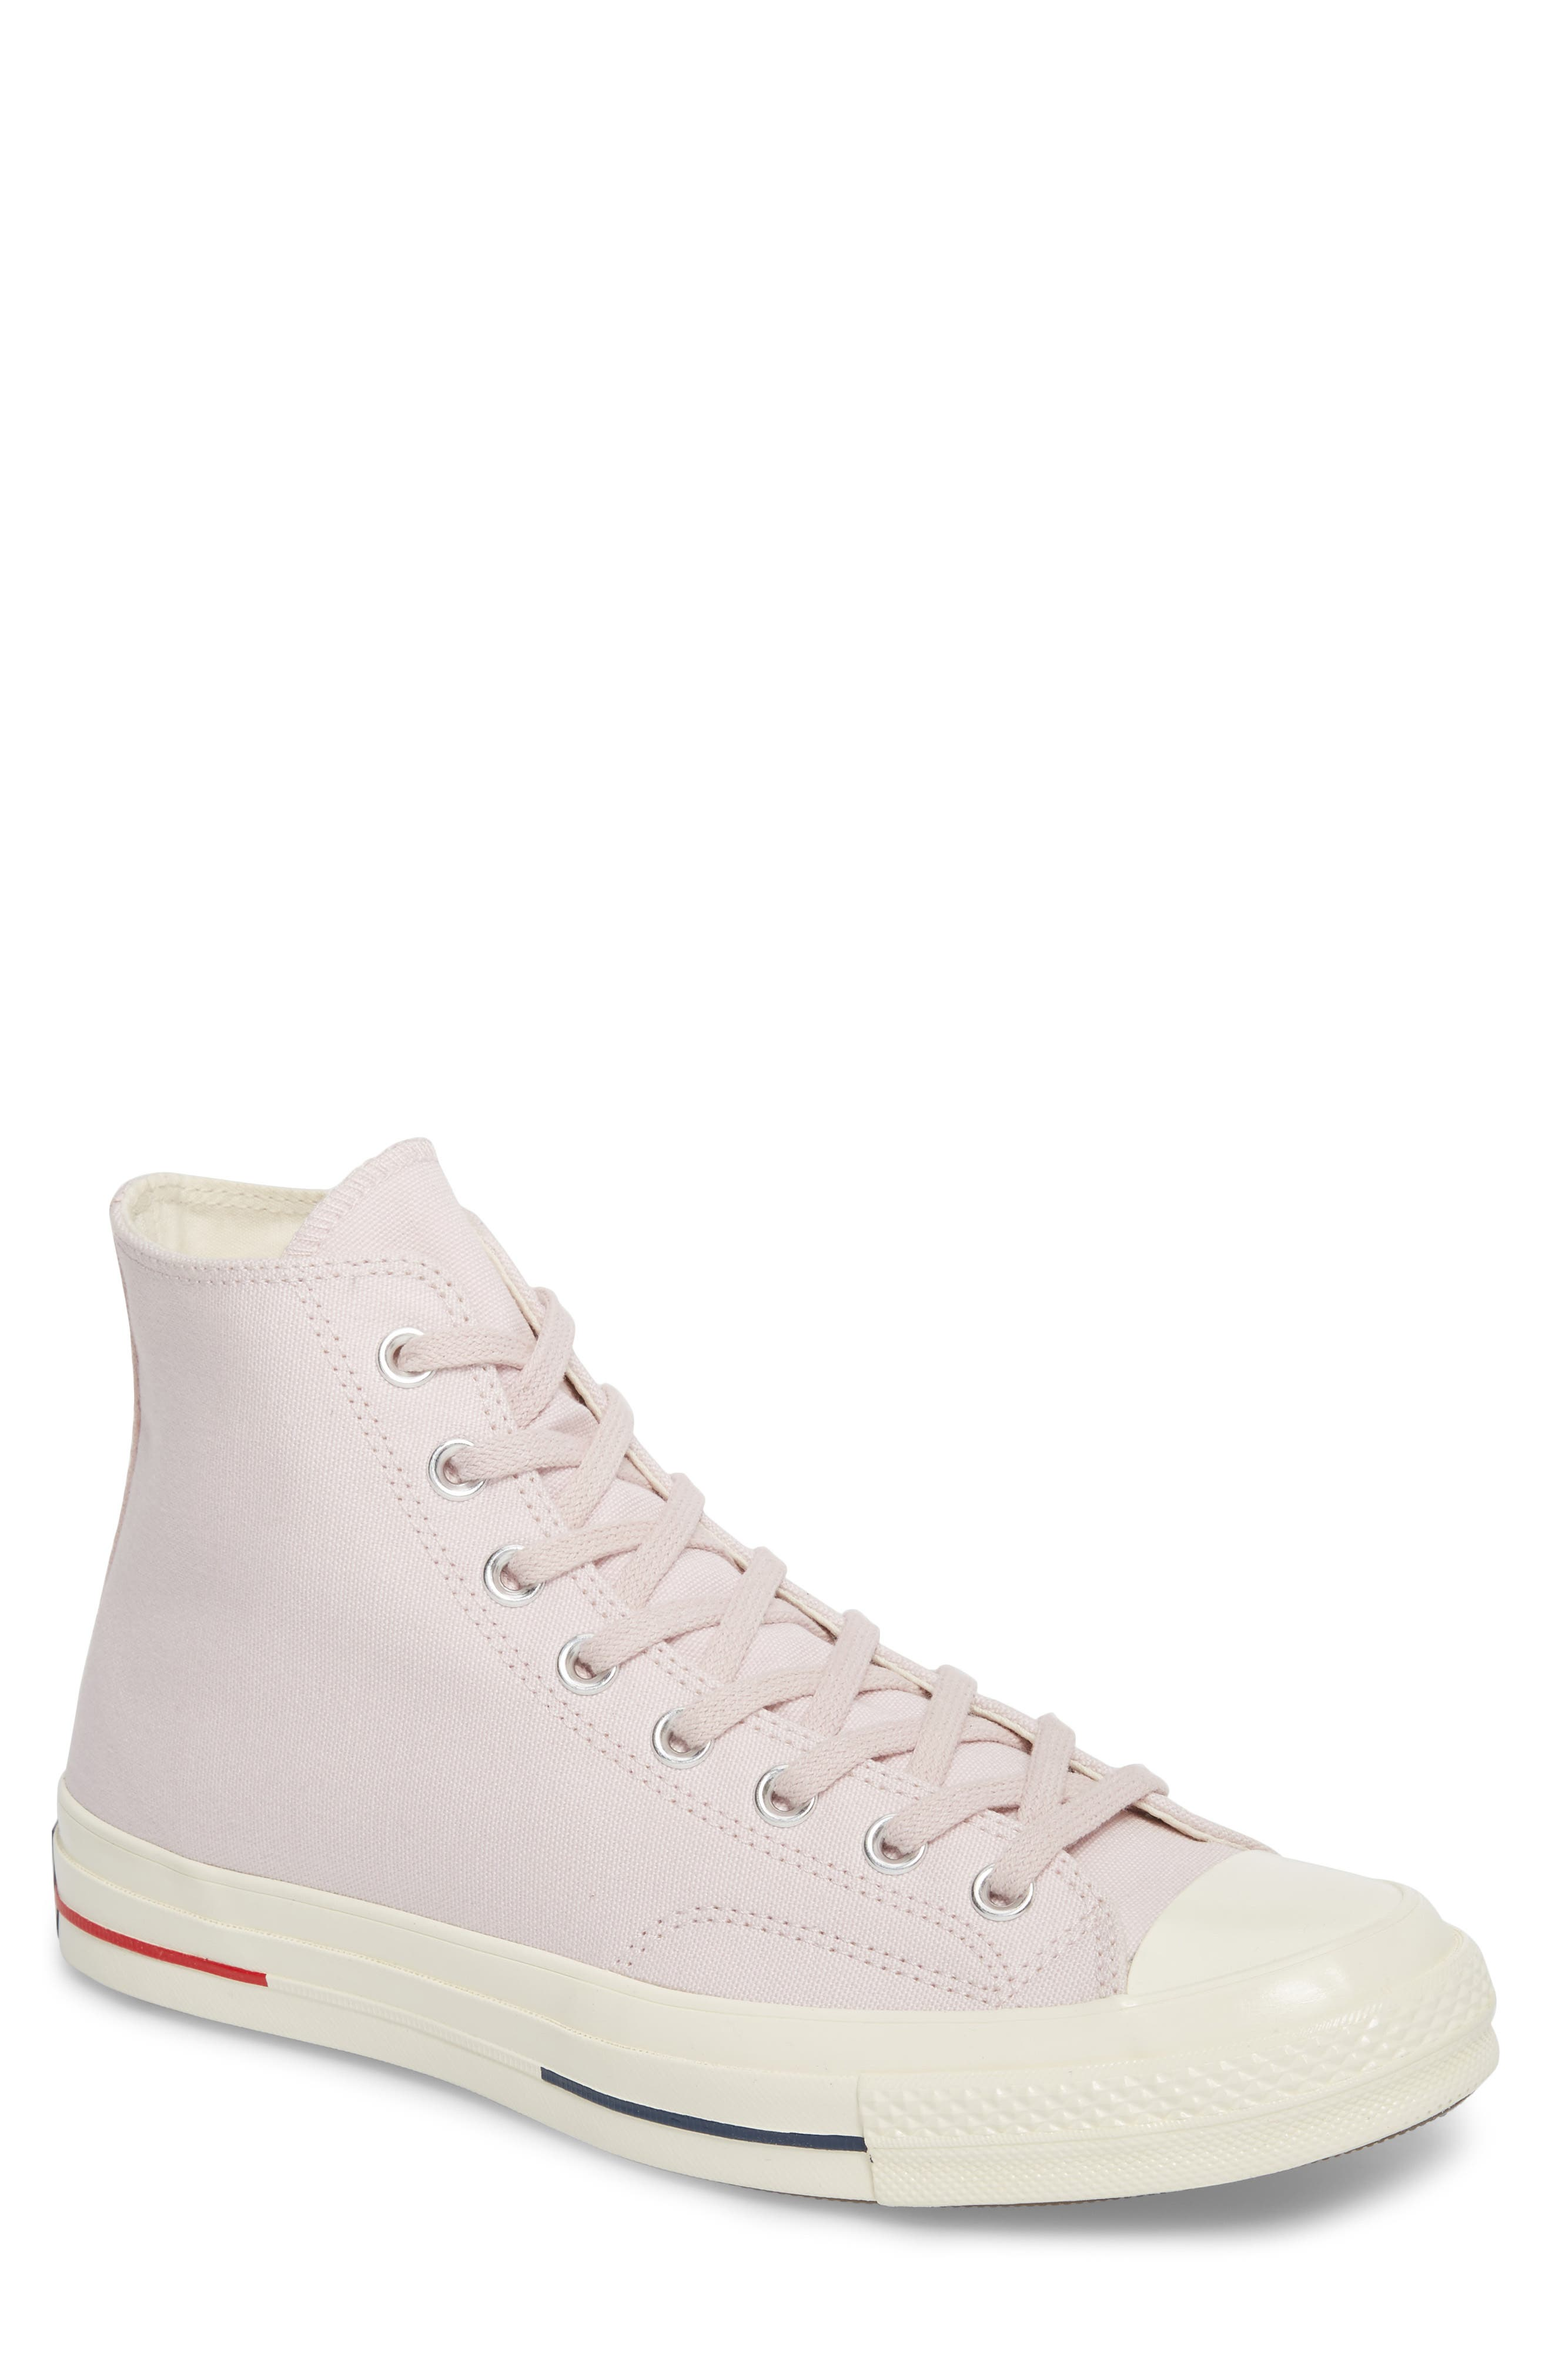 Chuck Taylor<sup>®</sup> All Star<sup>®</sup> '70 Heritage High Top Sneaker,                             Main thumbnail 1, color,